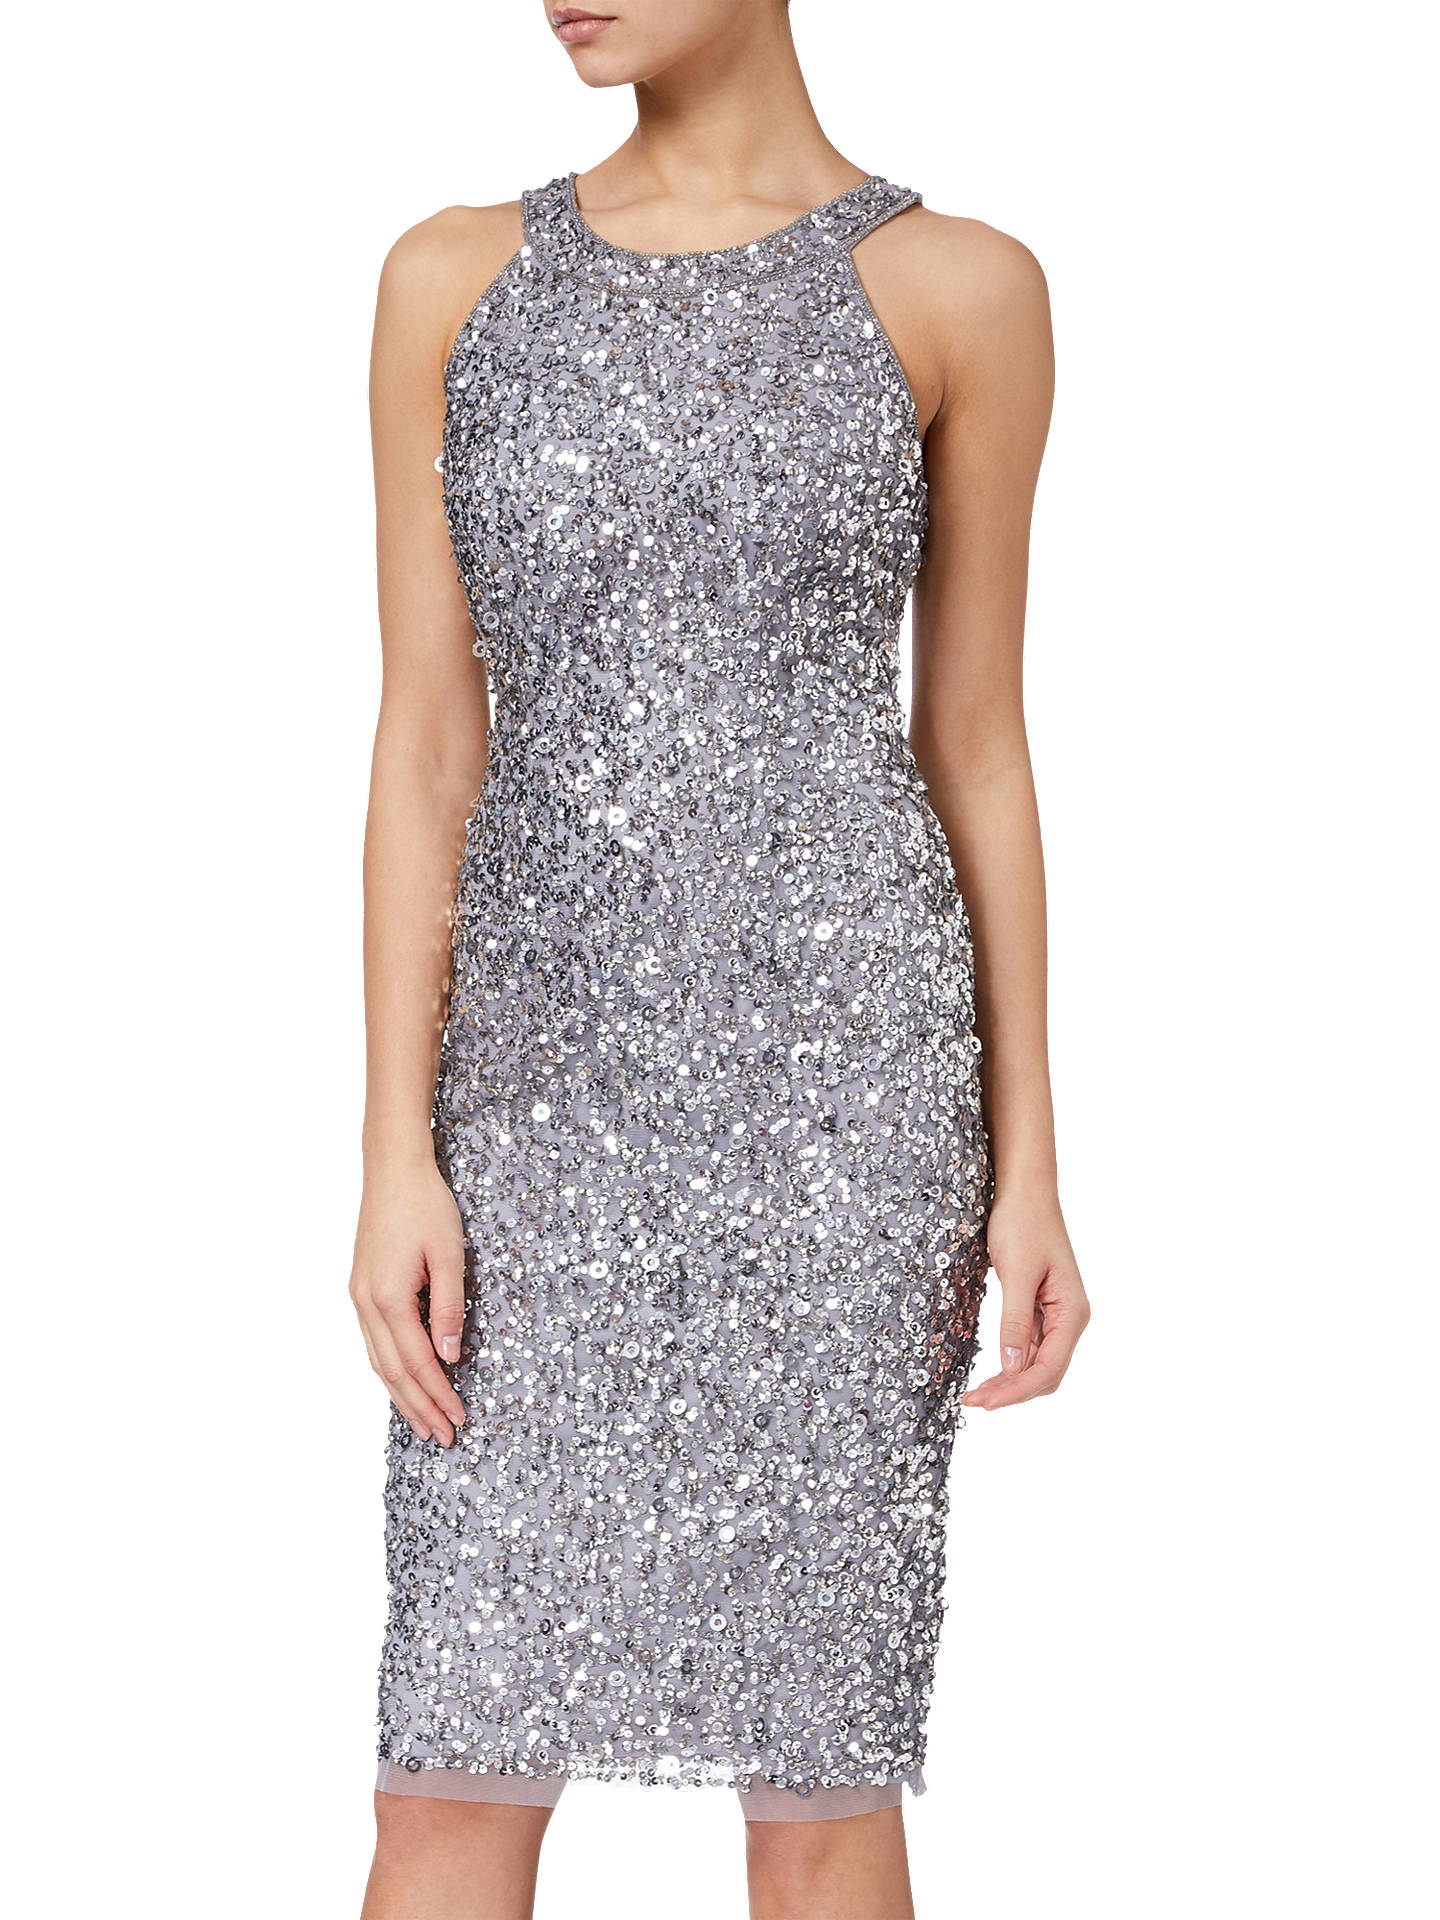 6b13a561b468 Buy Adrianna Papell Short Bead Halter Dress, Silver, 8 Online at  johnlewis.com ...